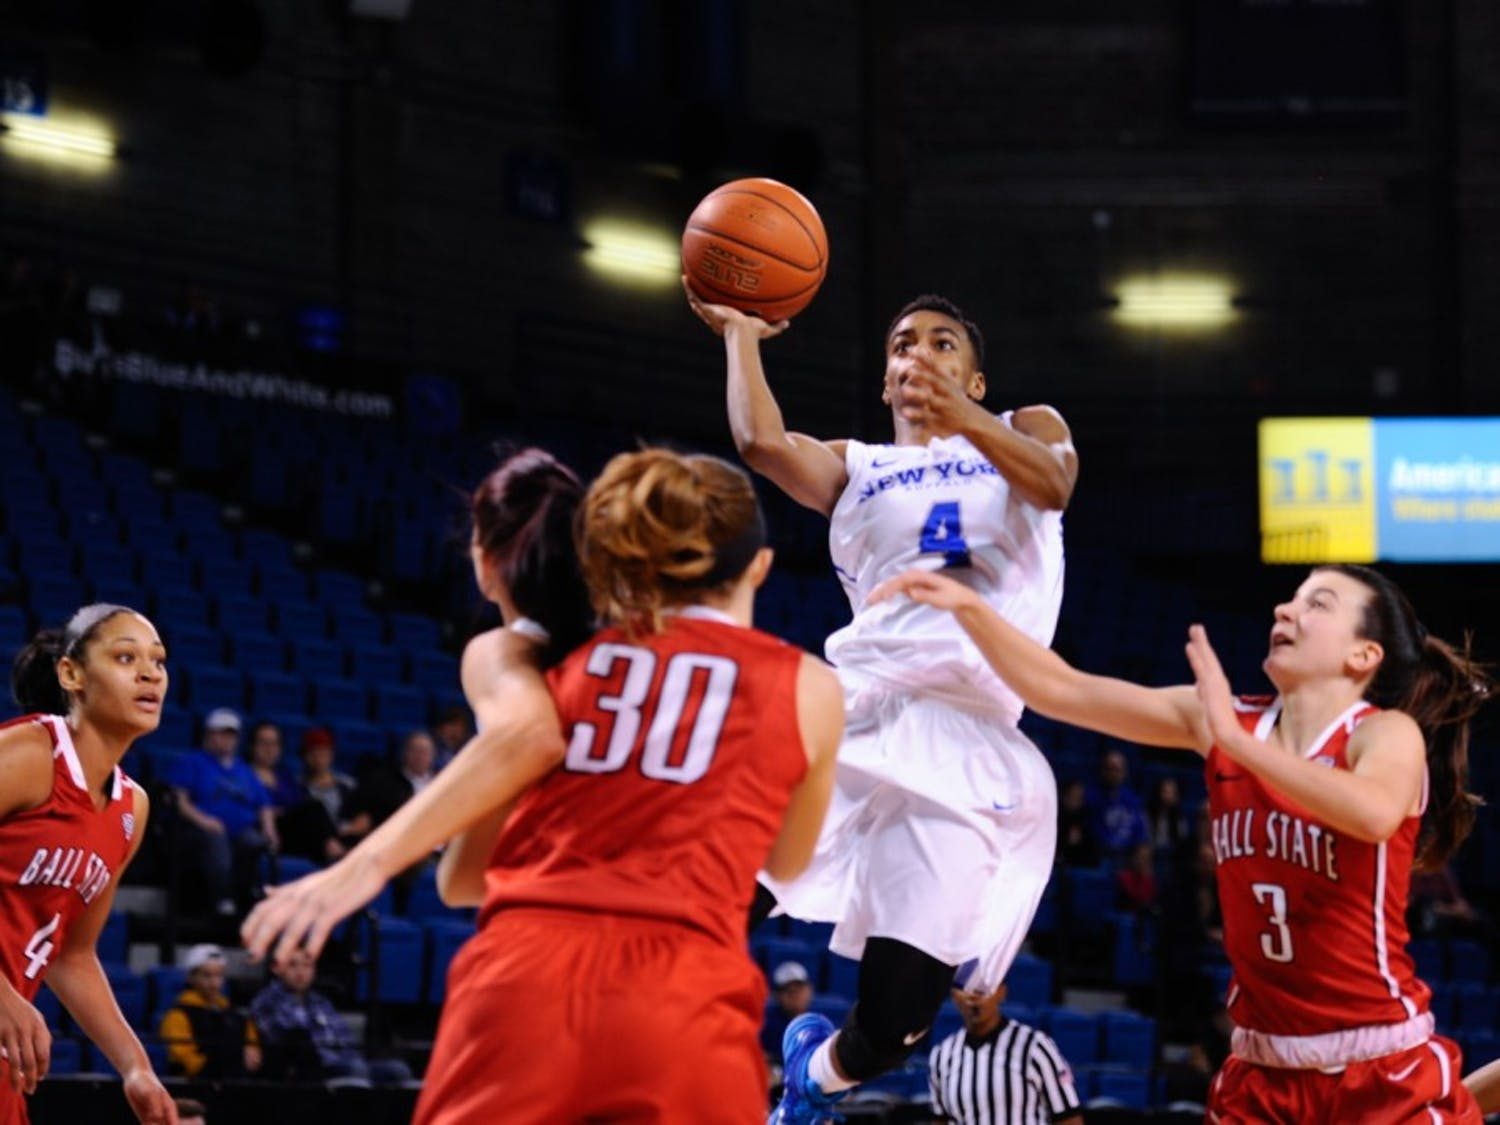 Ball State defeated the women's basketball team 59-57 at Alumni Arena Saturday afternoon. The Bulls fall to 11-10 and 3-7 in the Mid-American Conference.